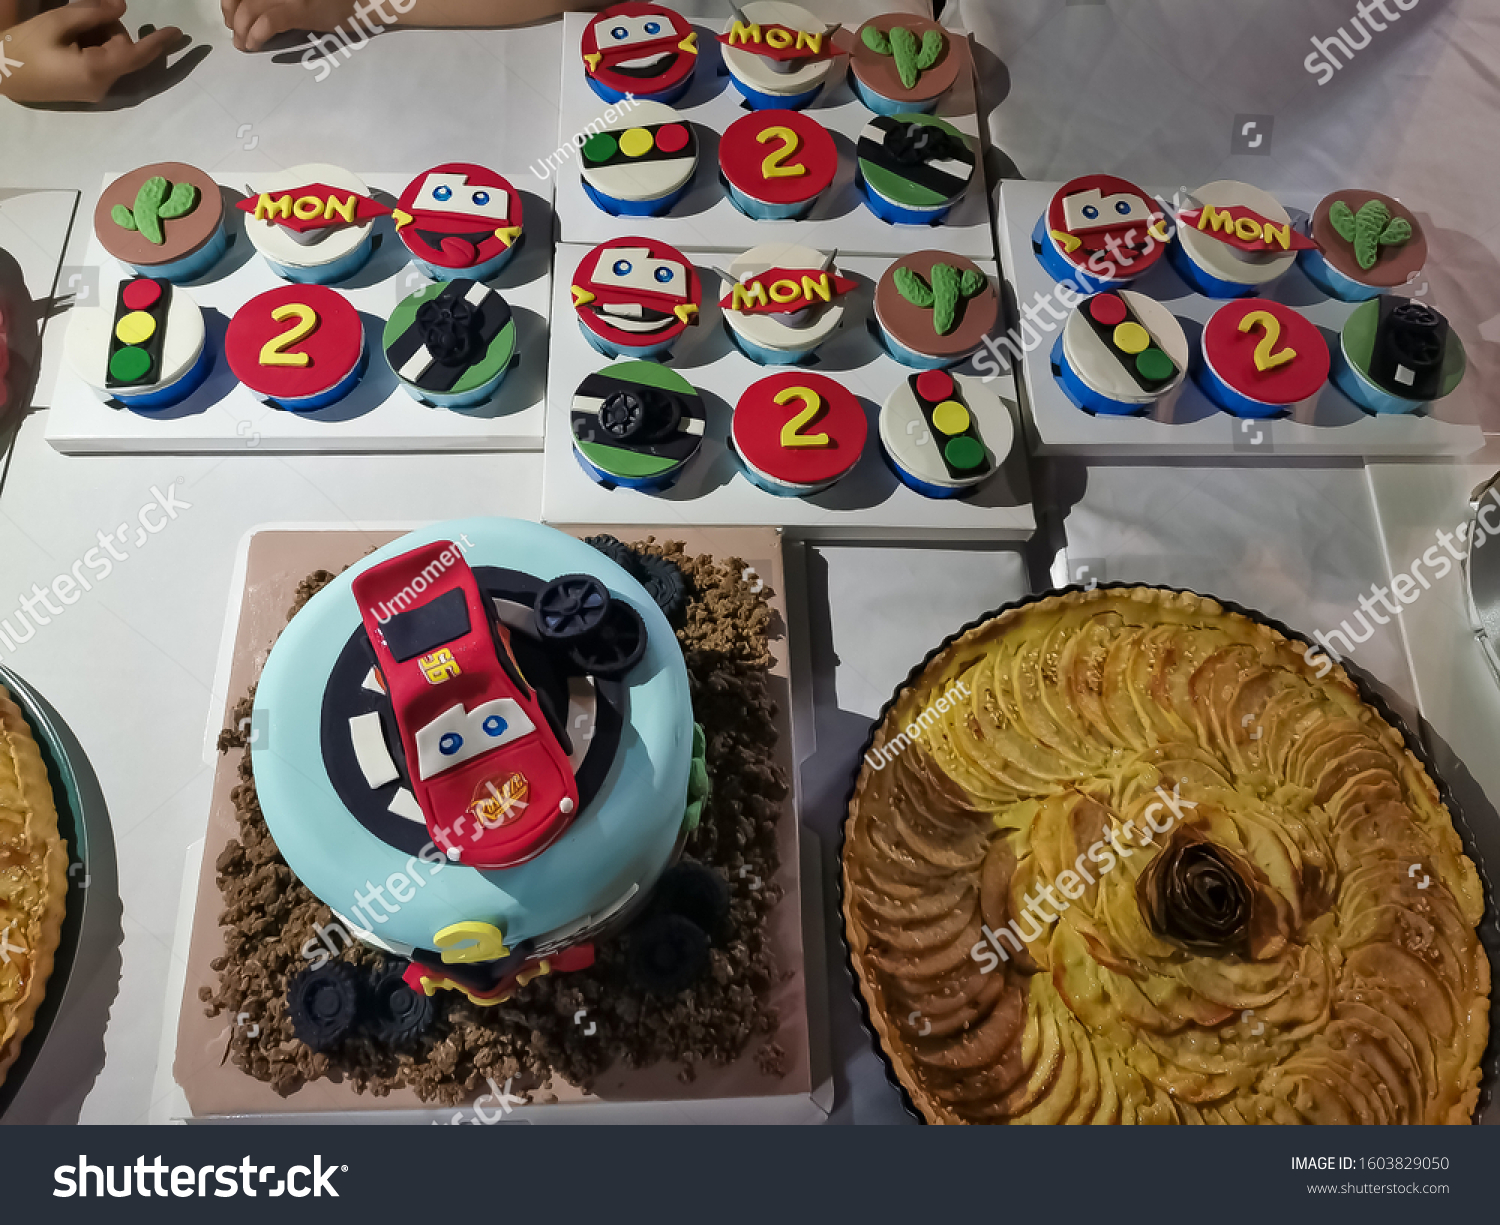 Superb Number 95 Red Lightning Mcqueen Cake Stock Photo Edit Now 1603829050 Birthday Cards Printable Inklcafe Filternl